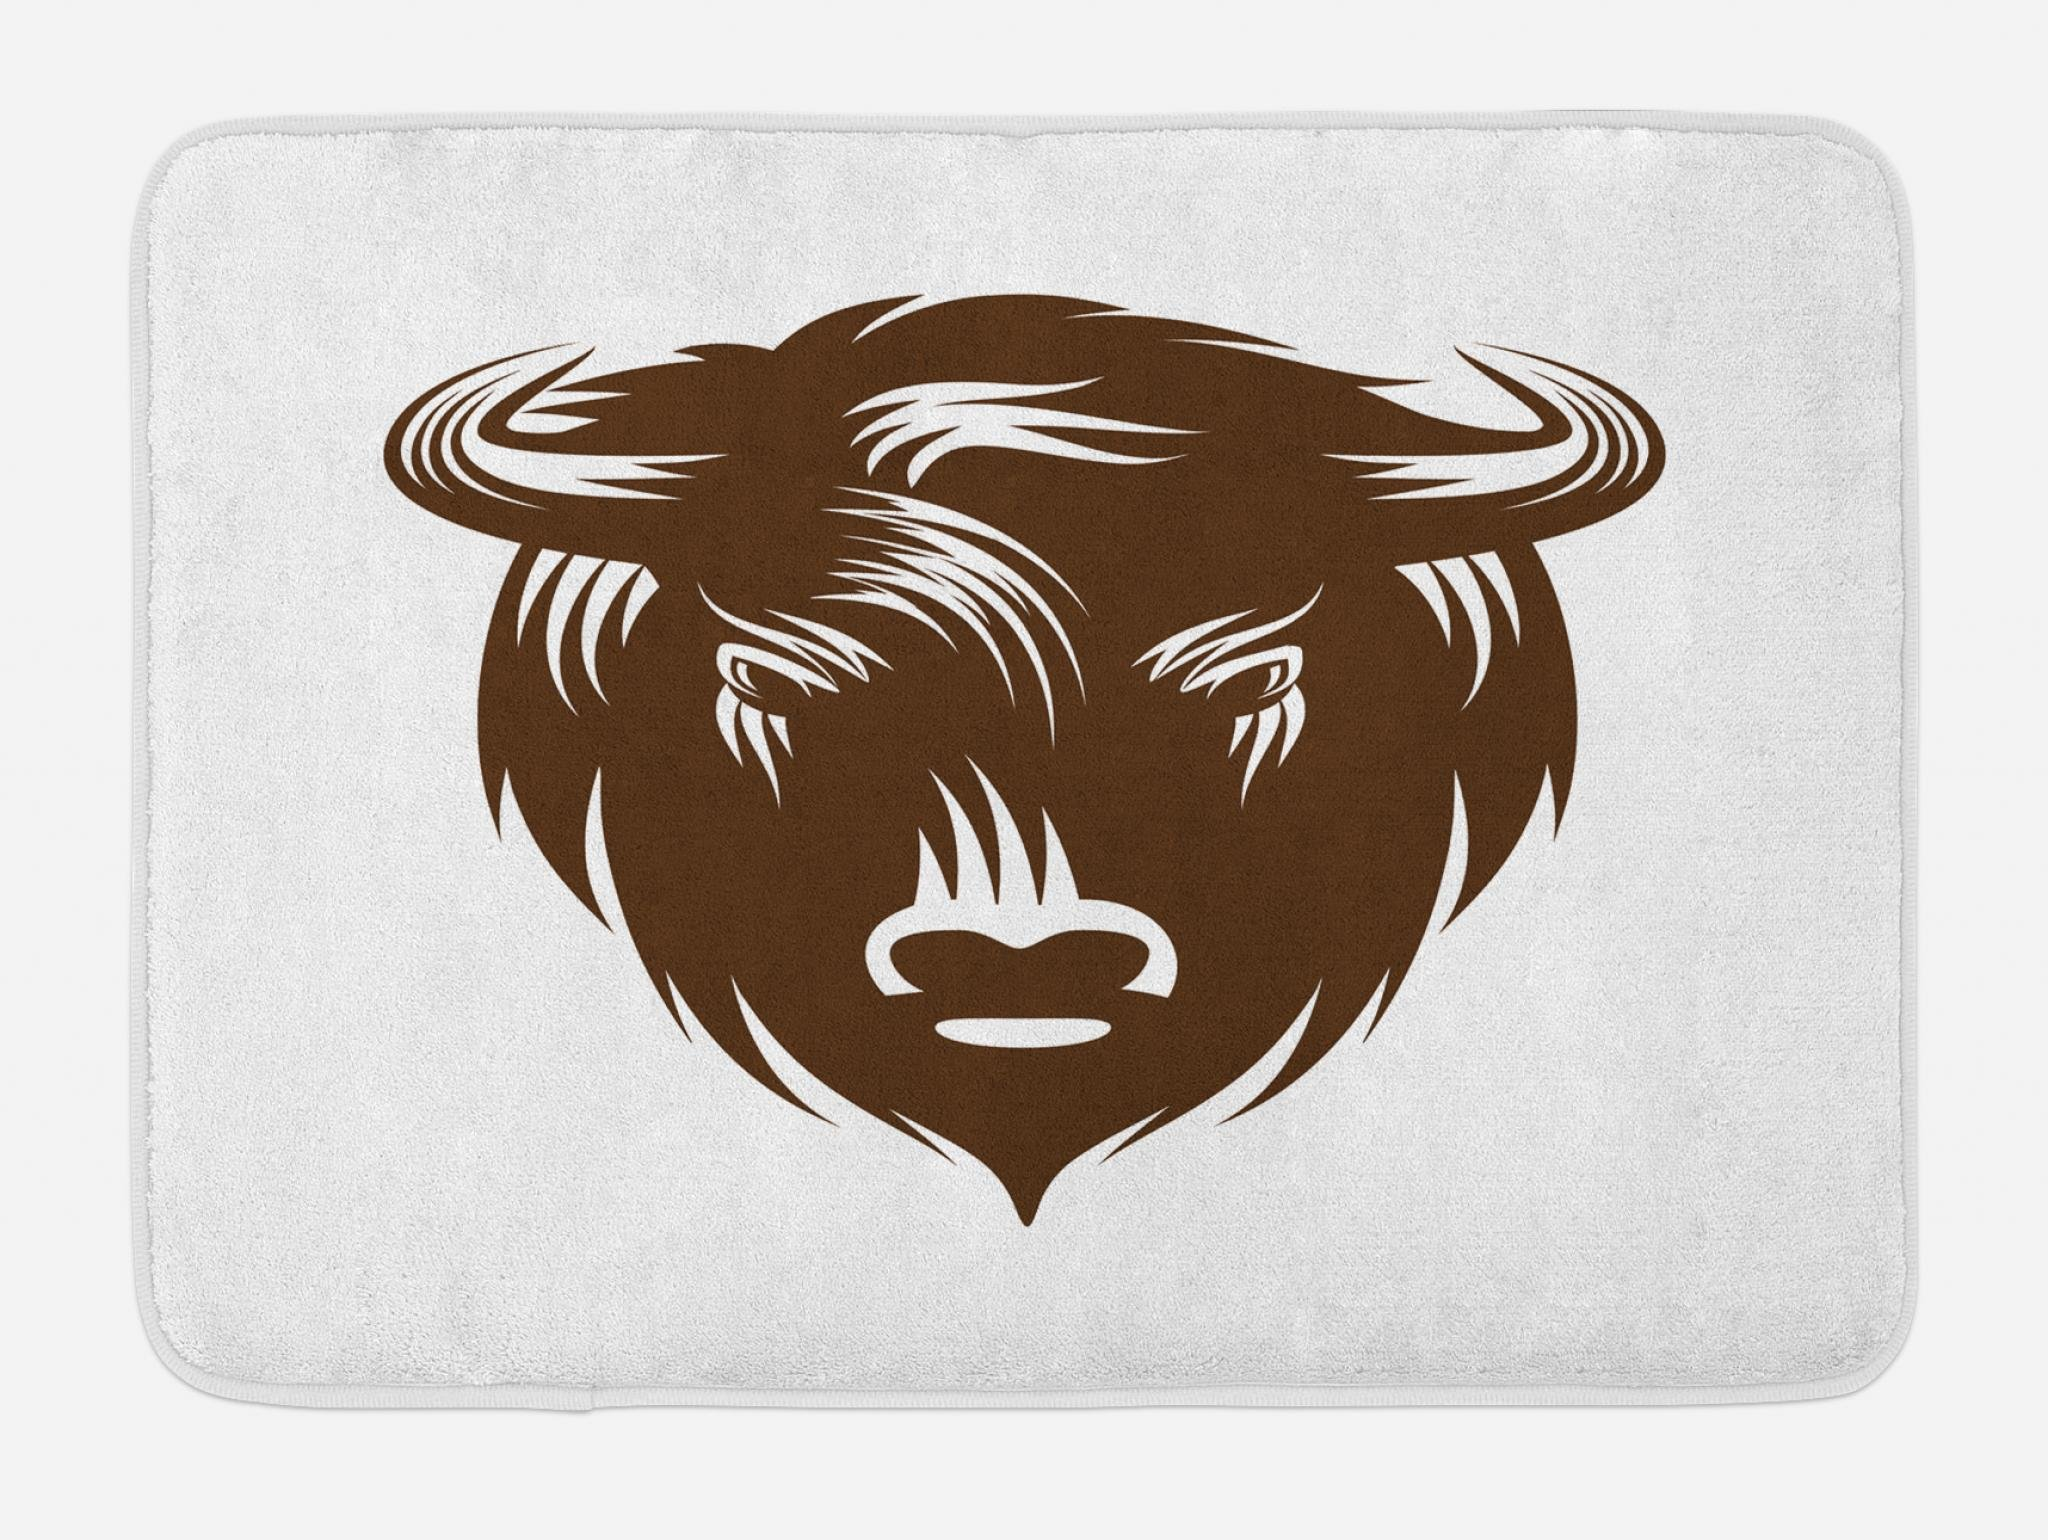 Lunarable Bison Bath Mat, Earth Tones Horned Buffalo Head Wilderness Forest Animal Jungle Illustration, Plush Bathroom Decor Mat with Non Slip Backing, 29.5 W X 17.5 W Inches, Chocolate White